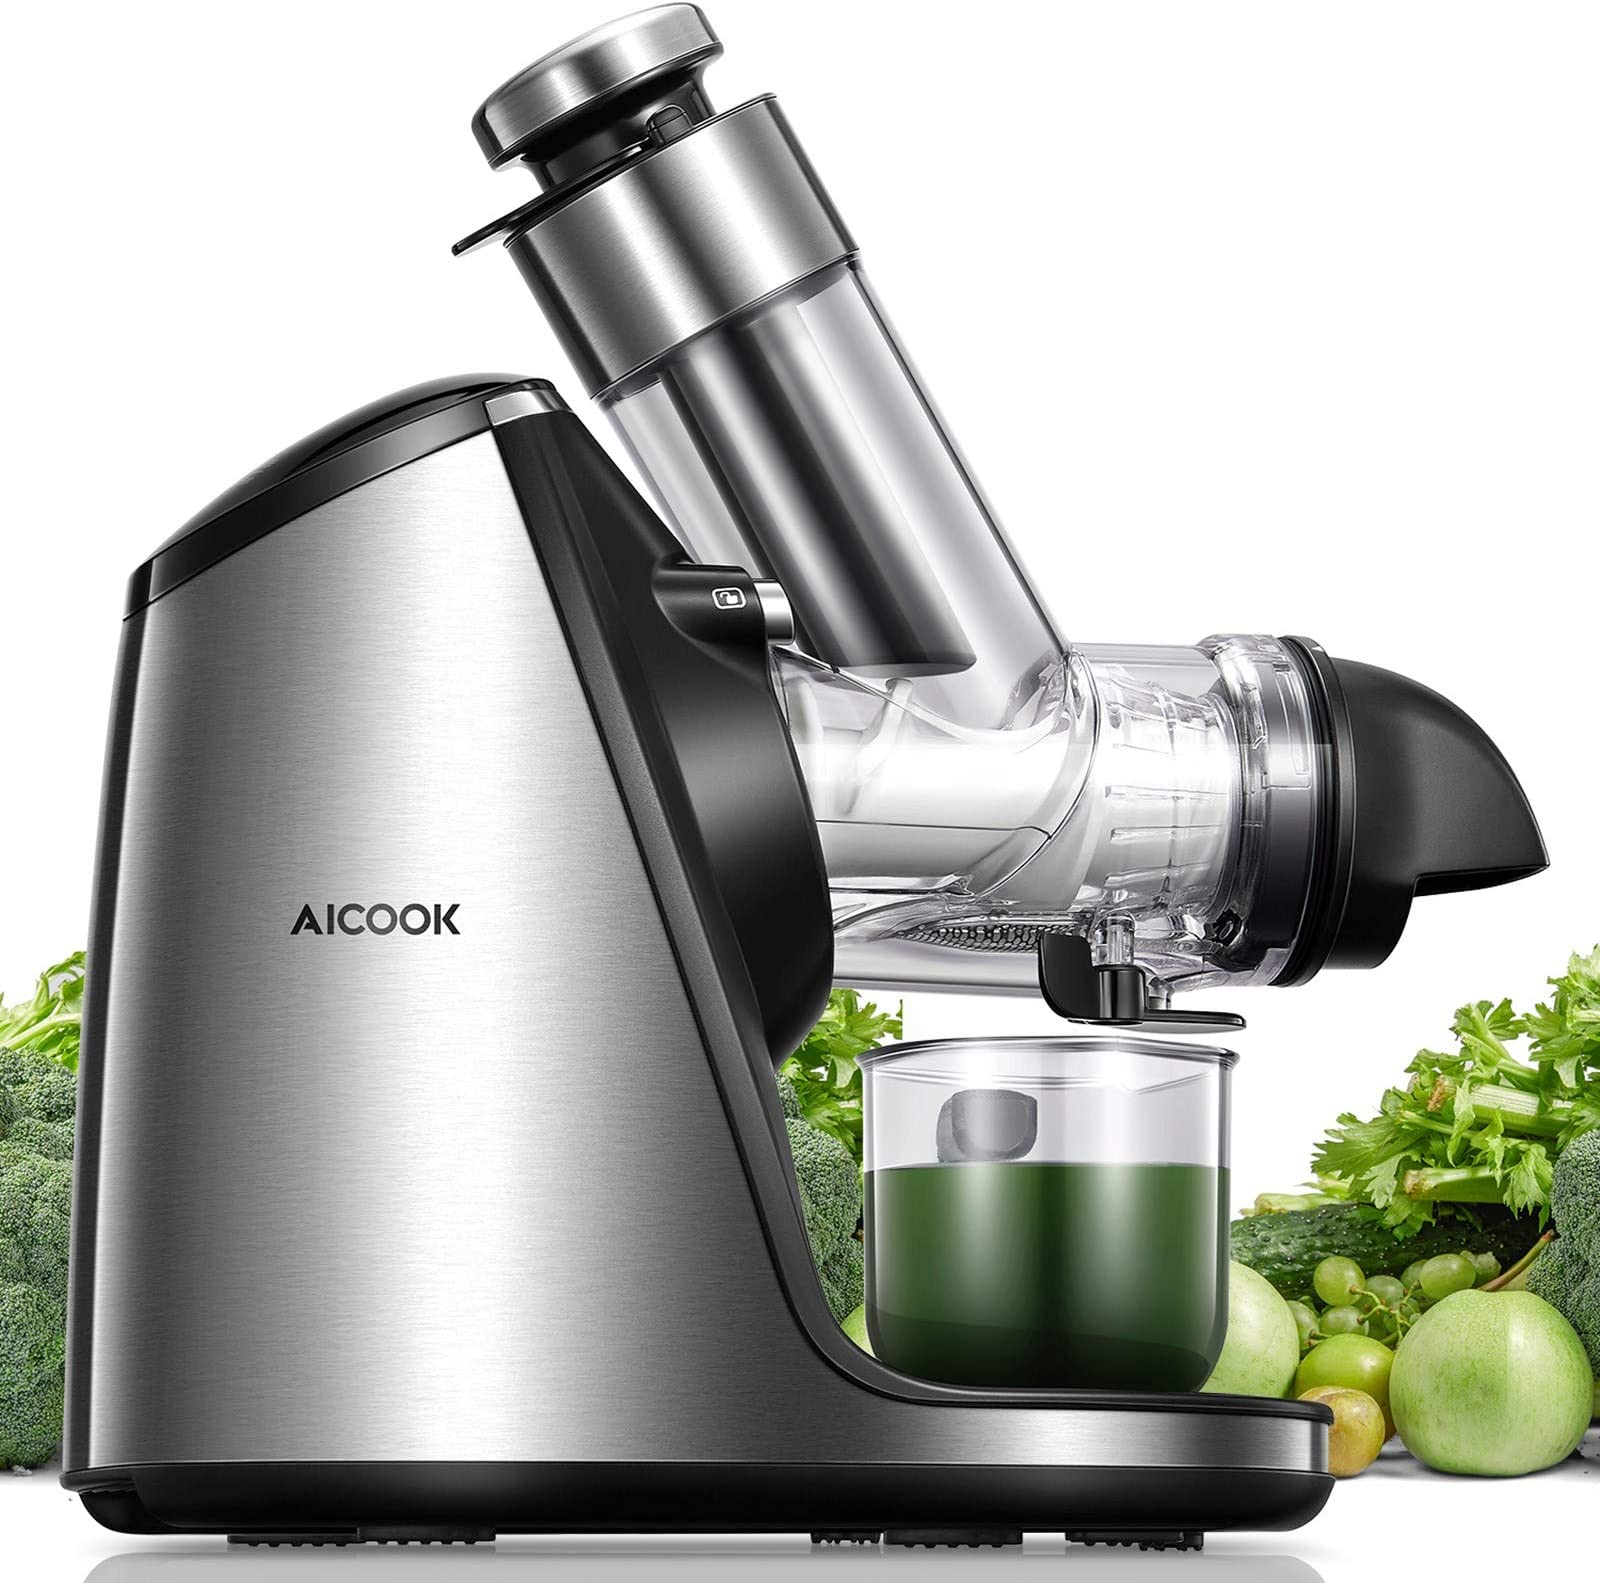 AICOOK Juicer Machines, 3in Large Feed Chute, Stainless Steel Slow Masticating 200W Easy to Clean, Ceramic Auger Makes High Nutritive Fruit&Vegetable Juice, Ice Cream ACC&Juice Recipes Included